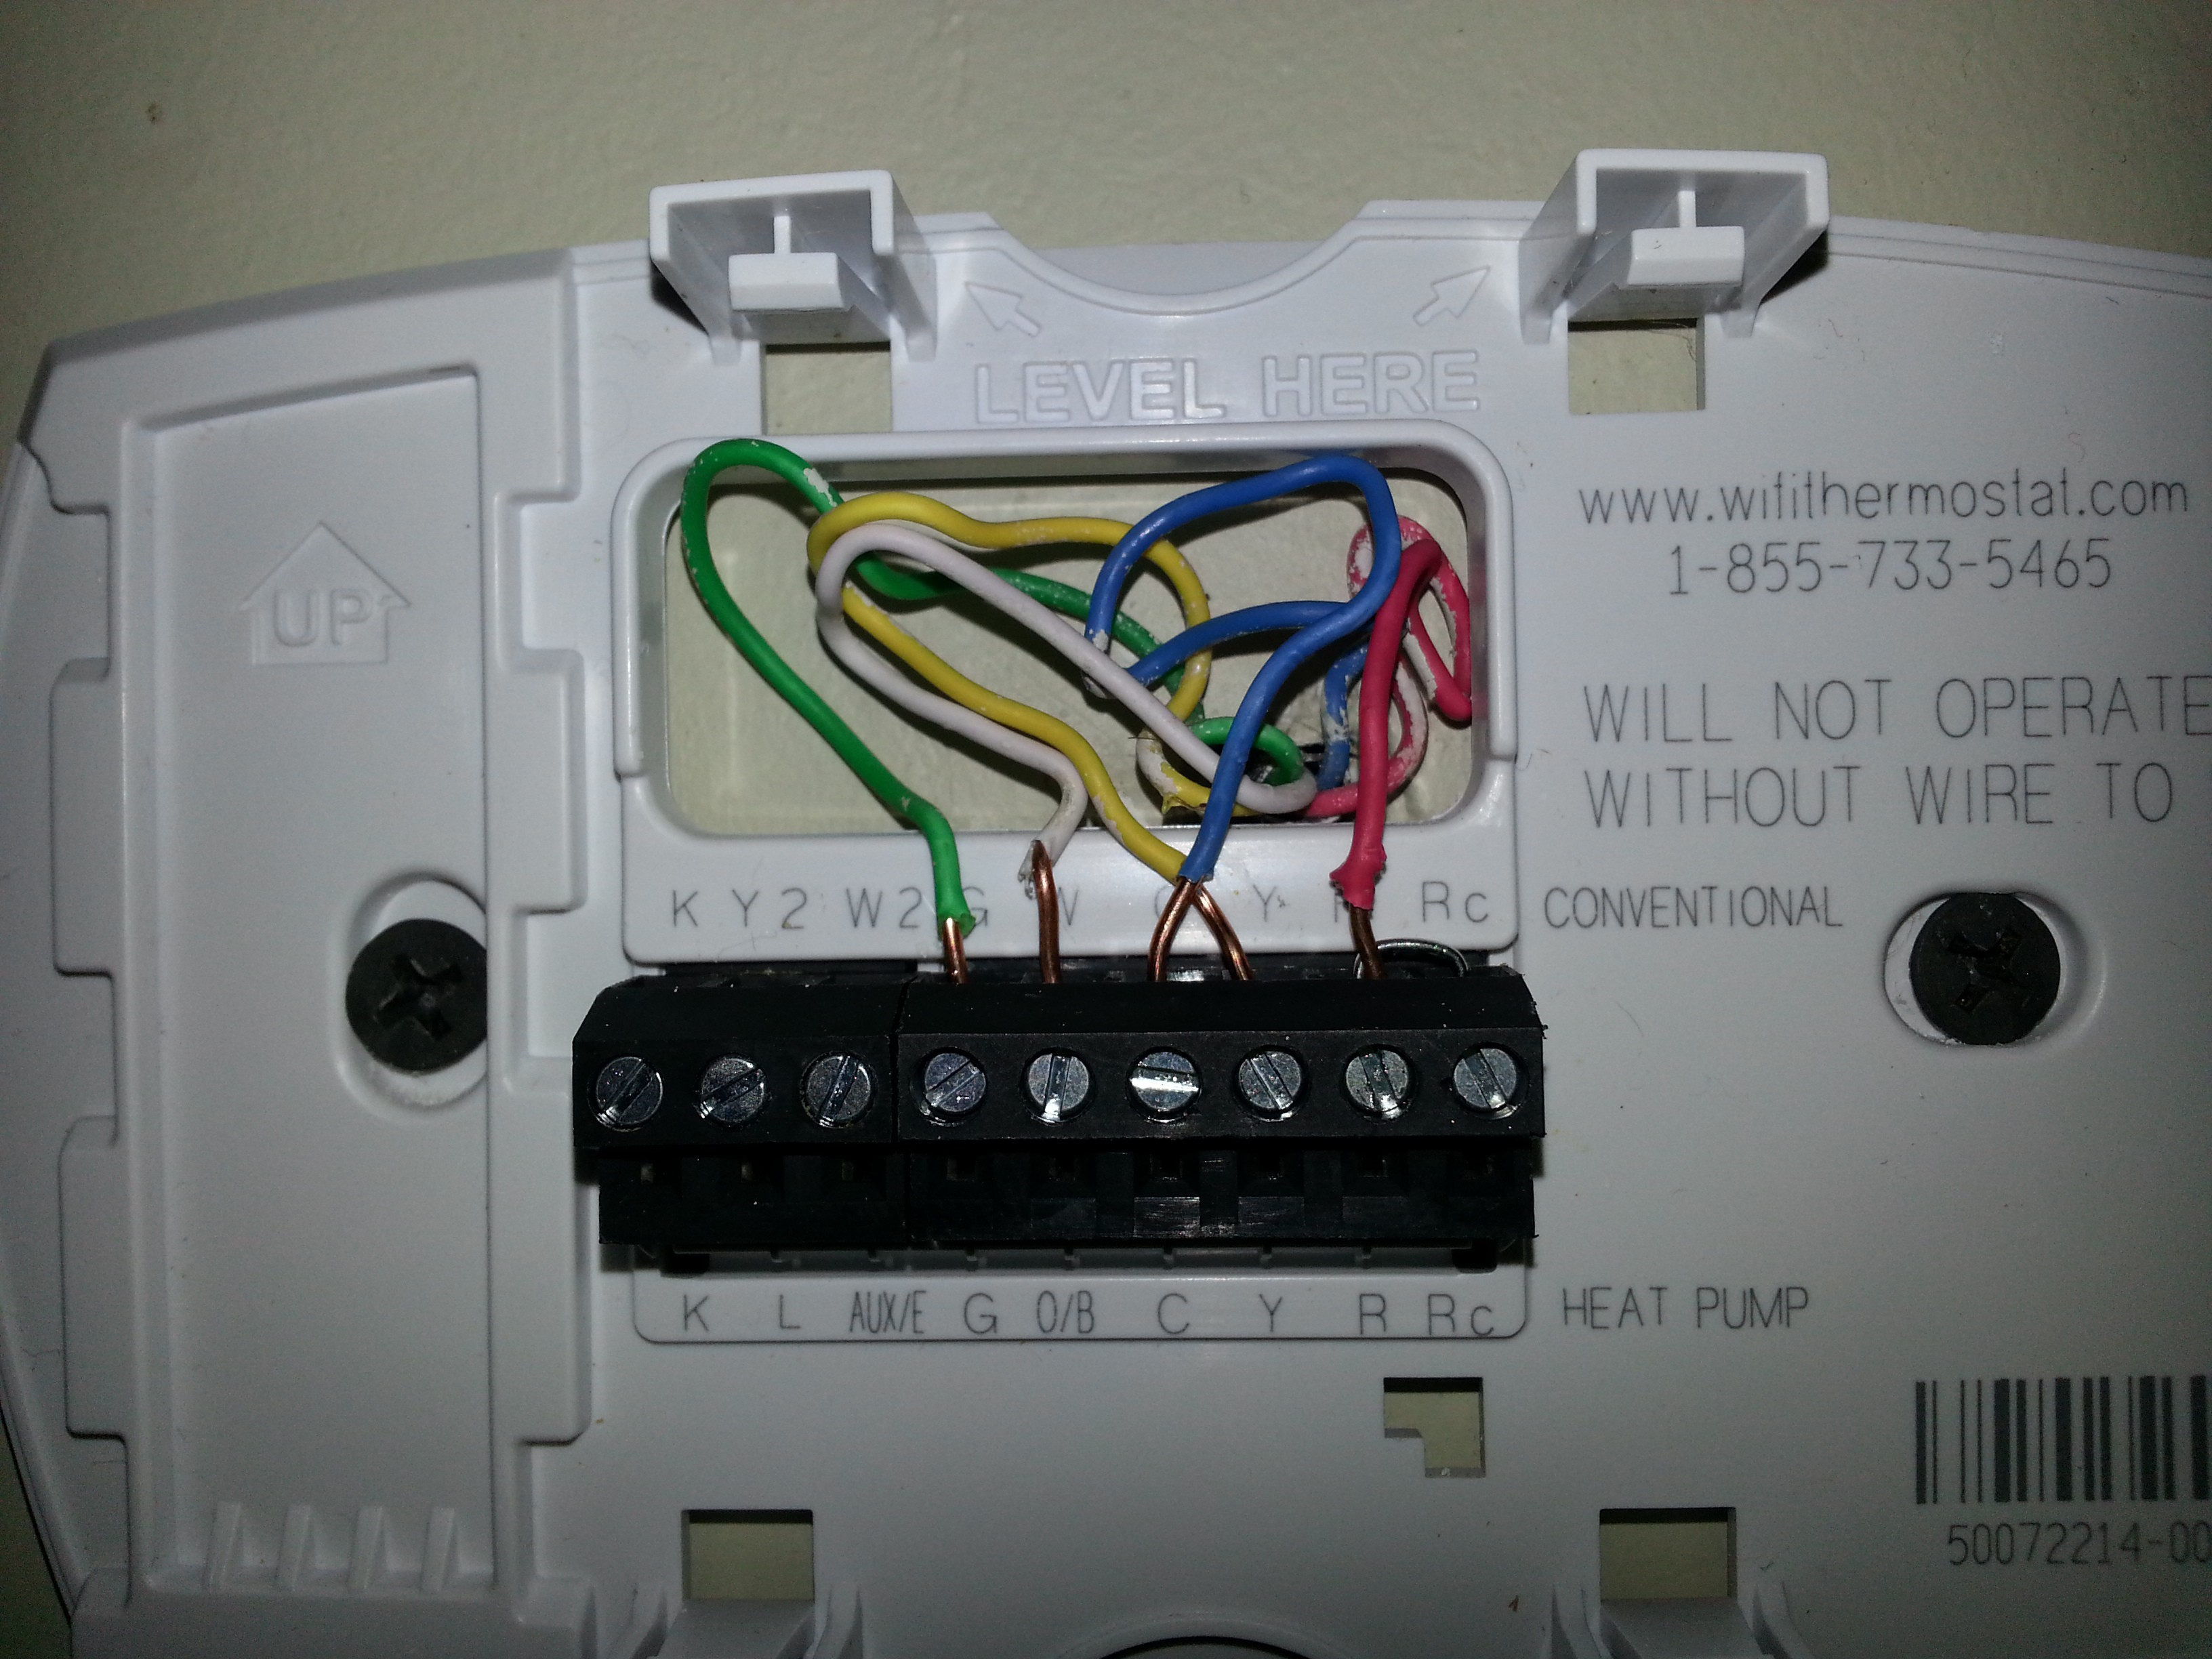 honeywell thermostat th3110d1008 wiring diagram Collection-Wiring Diagram for Honeywell thermostat Th3110d1008 Refrence Wiring Diagram for Honeywell thermostat Th3110d1008 Free Download 12-f